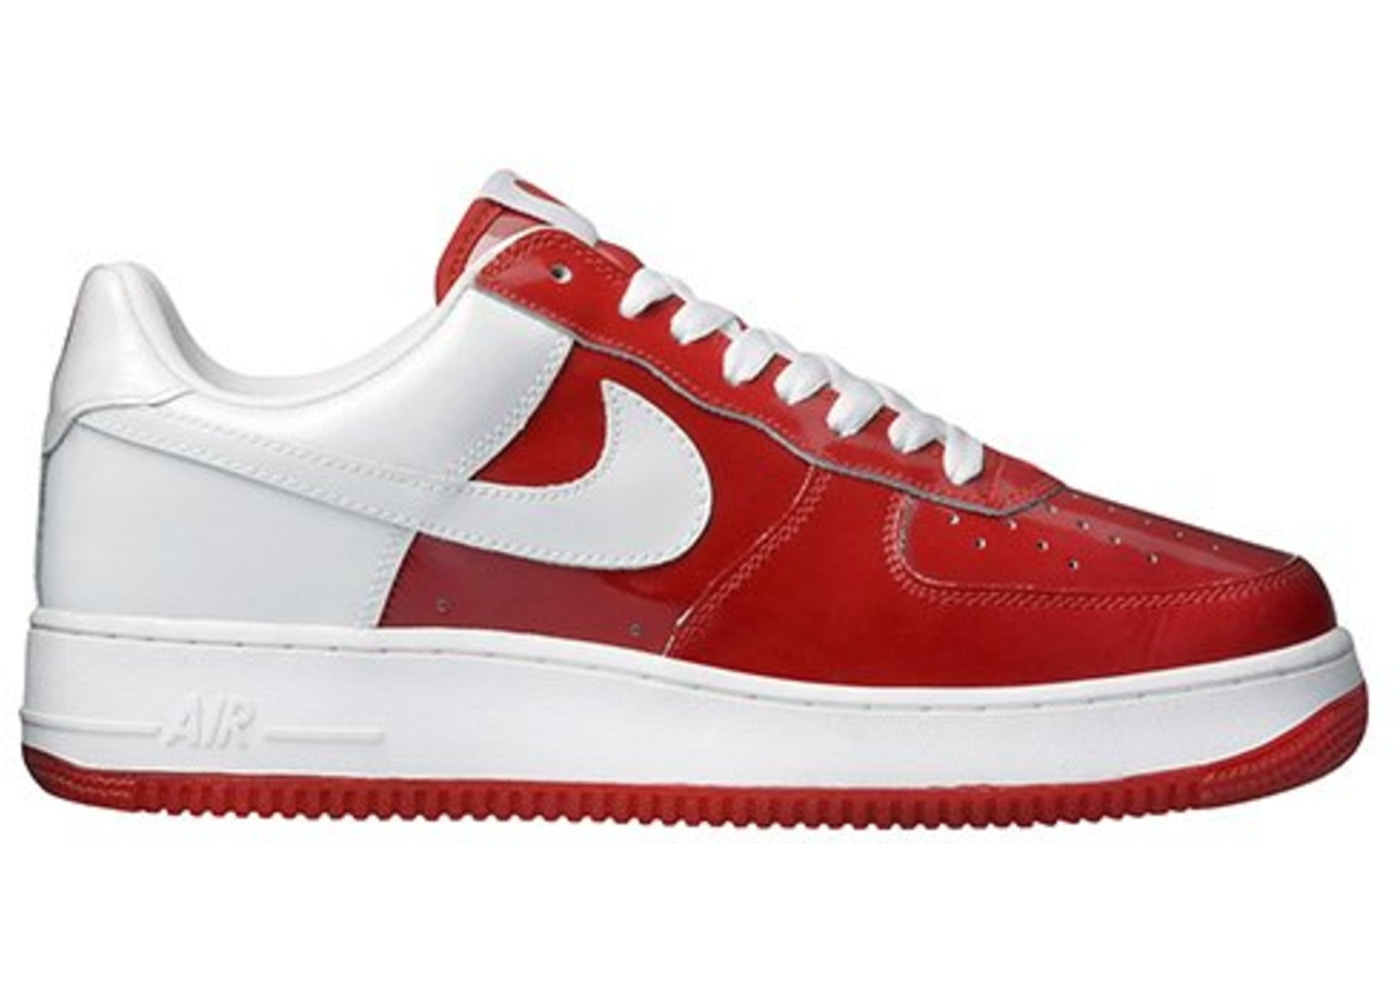 Nike Air Force 1 Low Valentines Day (2006)